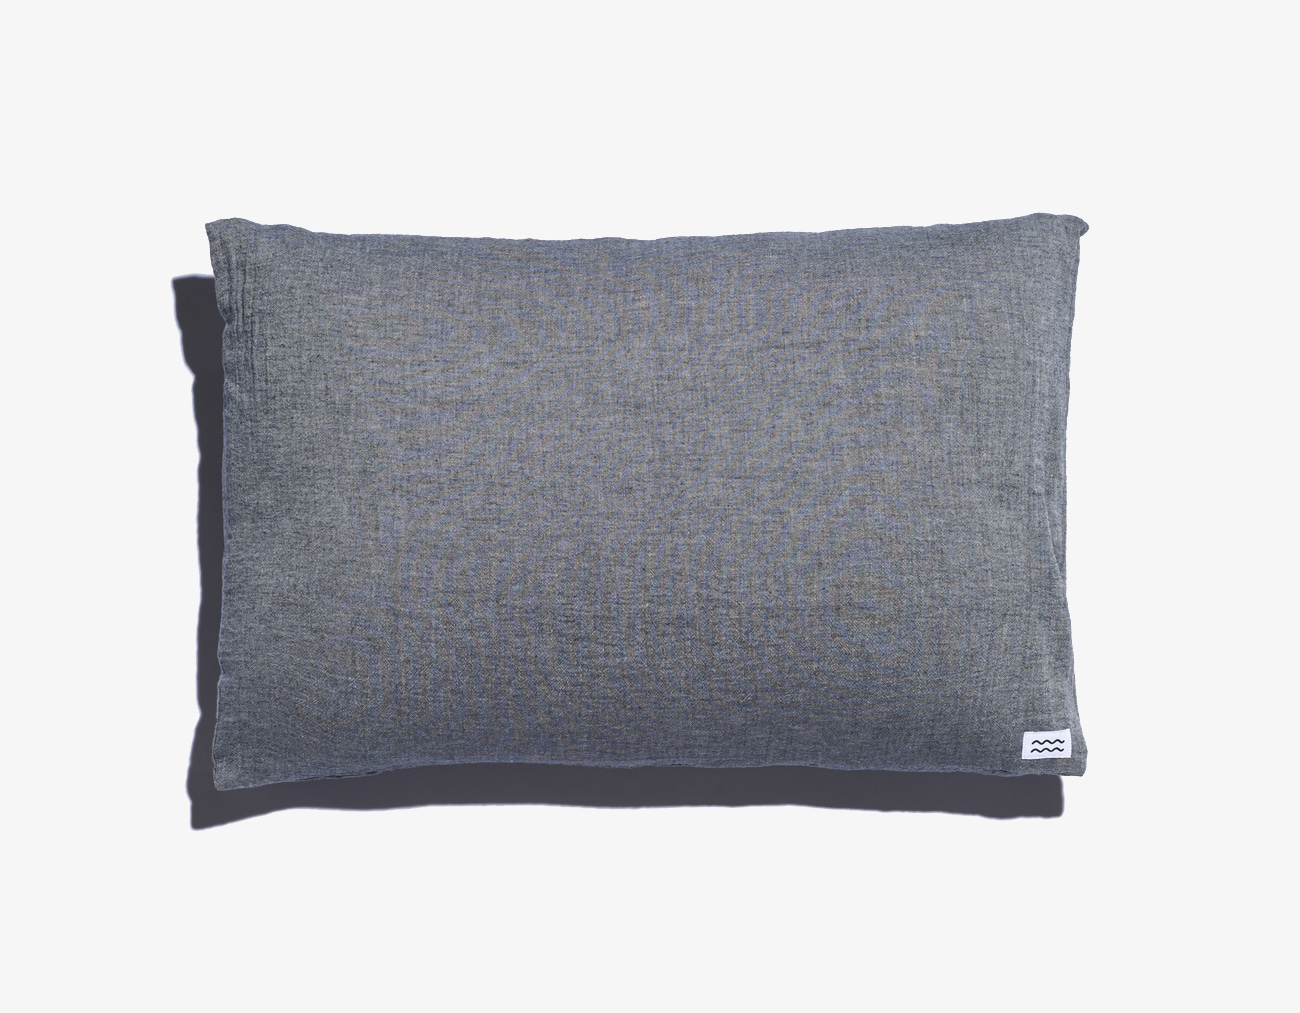 DOUBLE COTTON PILLOW COVER-GRAY